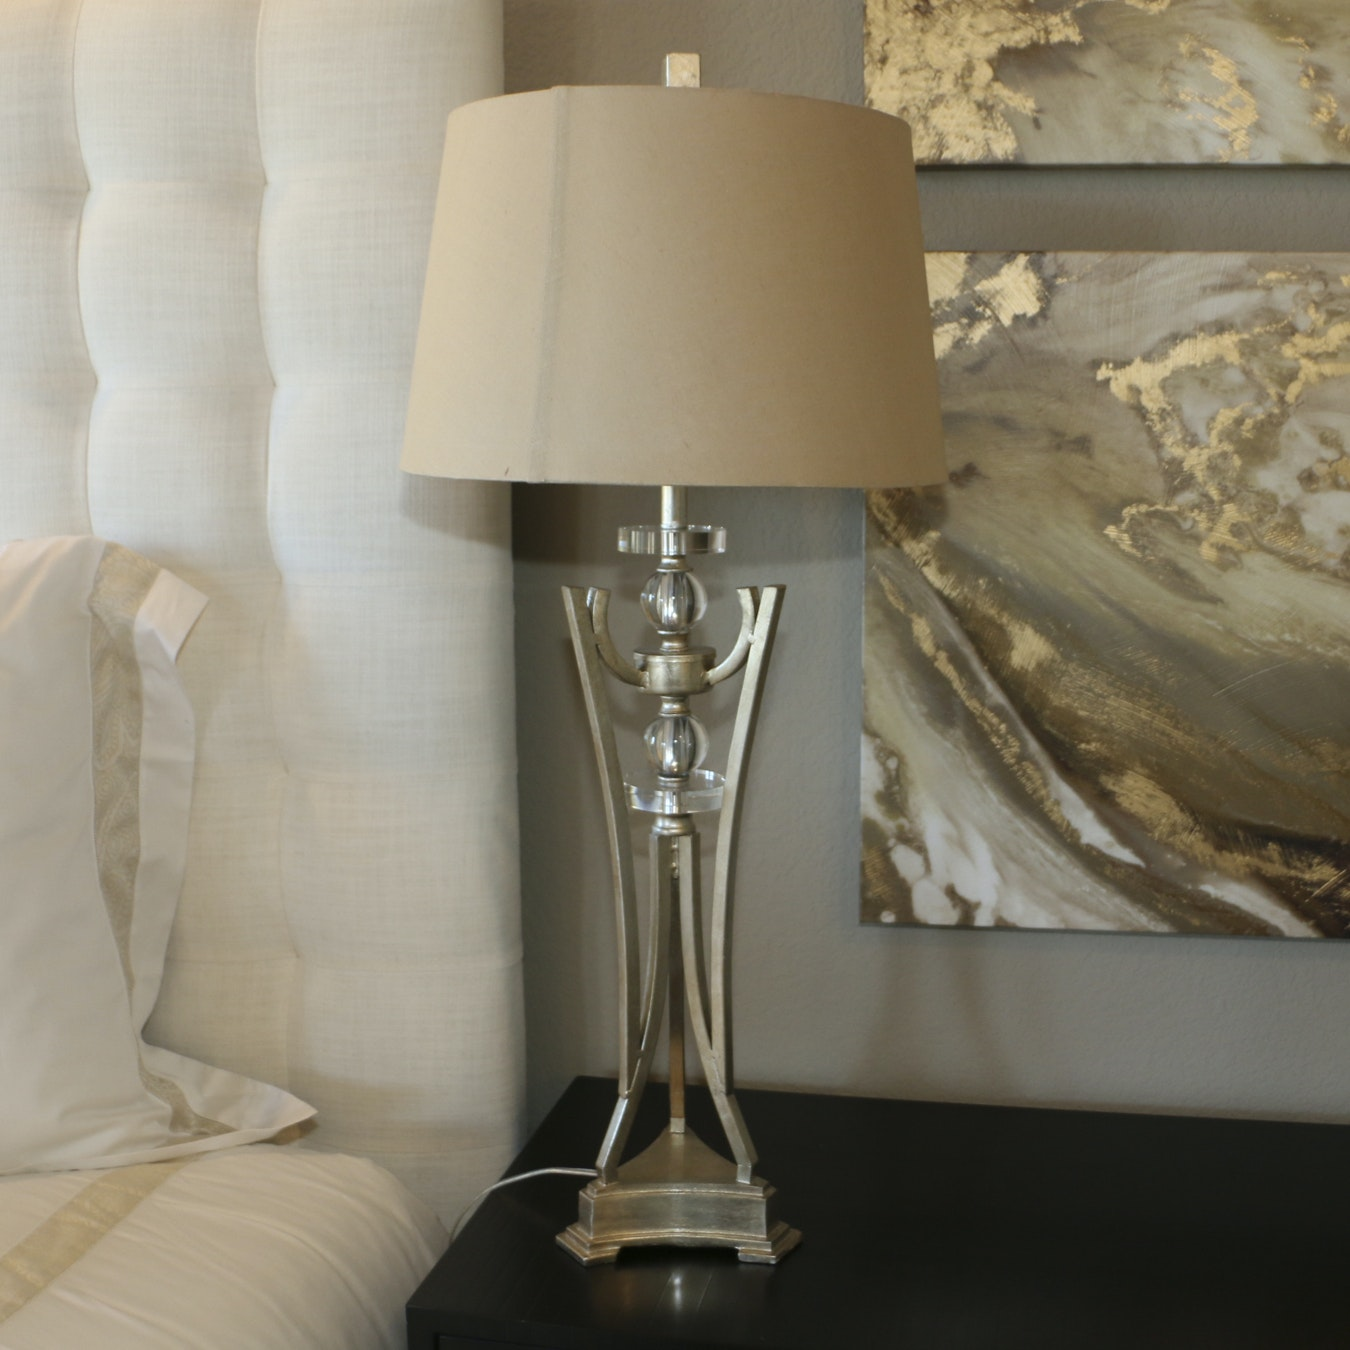 Metallic and Glass Structural Table Lamp with Shade